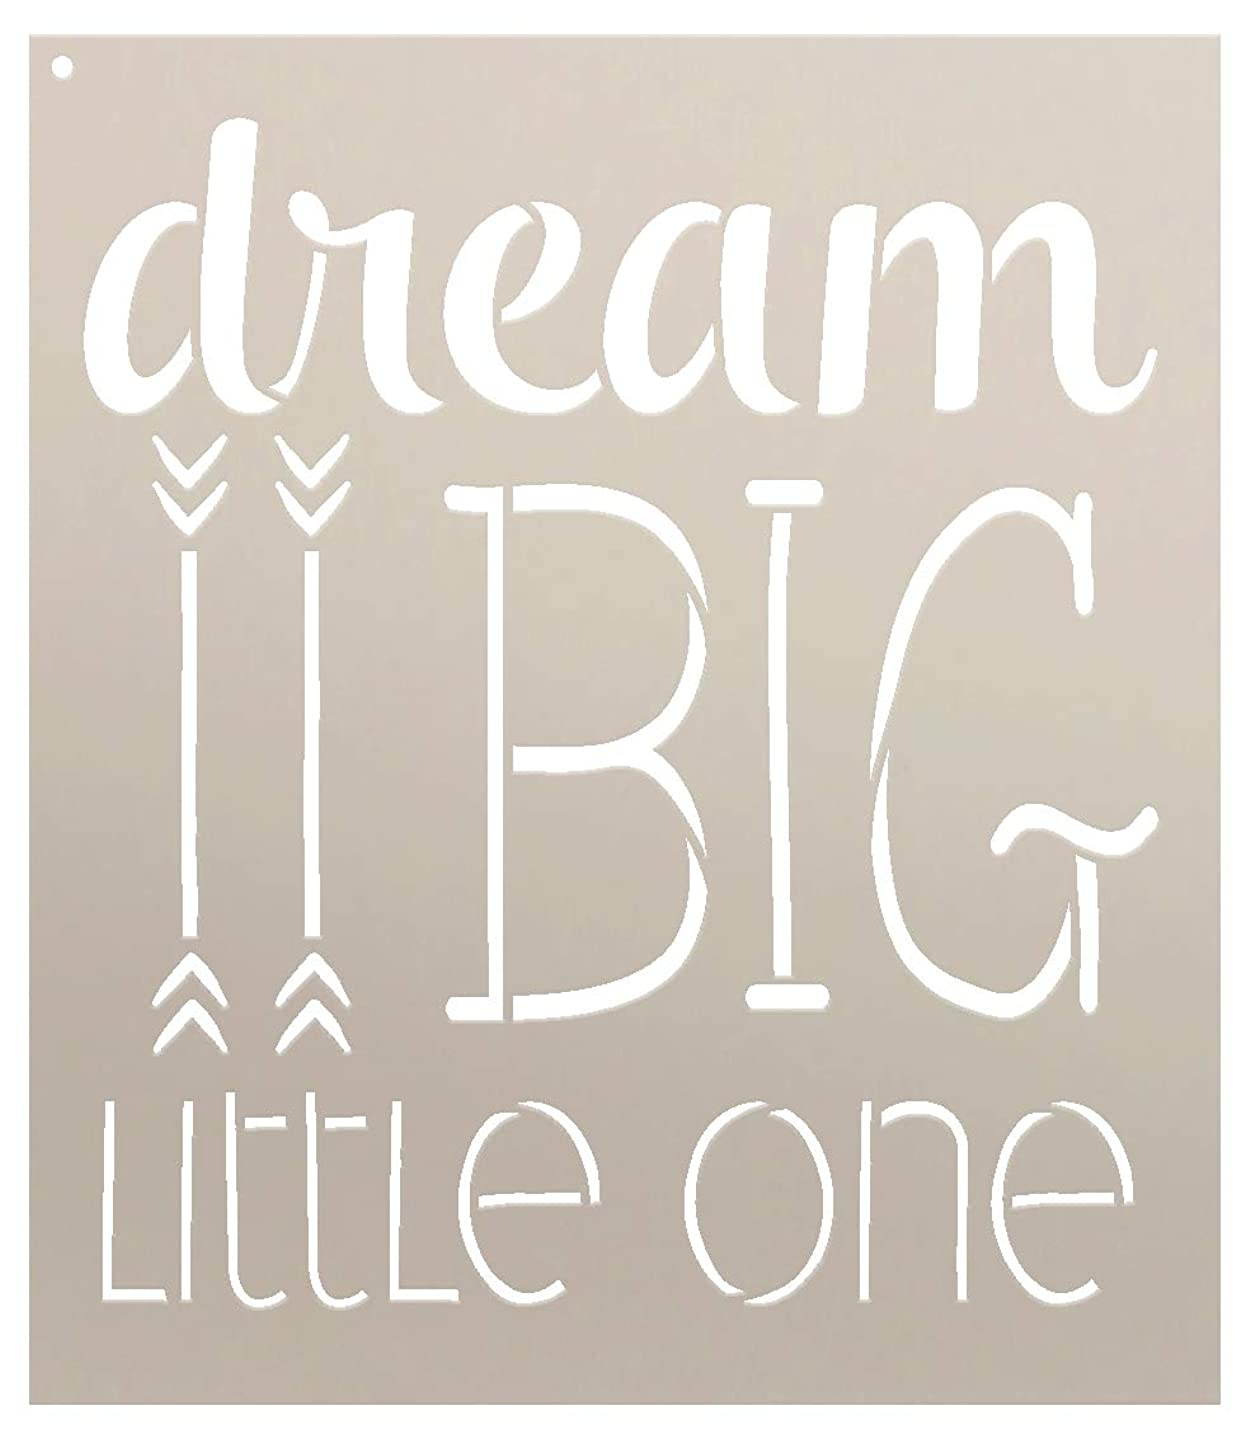 Dream Big Little One Stencil by StudioR12 | Inspiration Nursery Word Art - Reusable Mylar Template | Painting, Chalk, Mixed Media | Use for Wall Art, DIY Home Decor -Choose Size (7